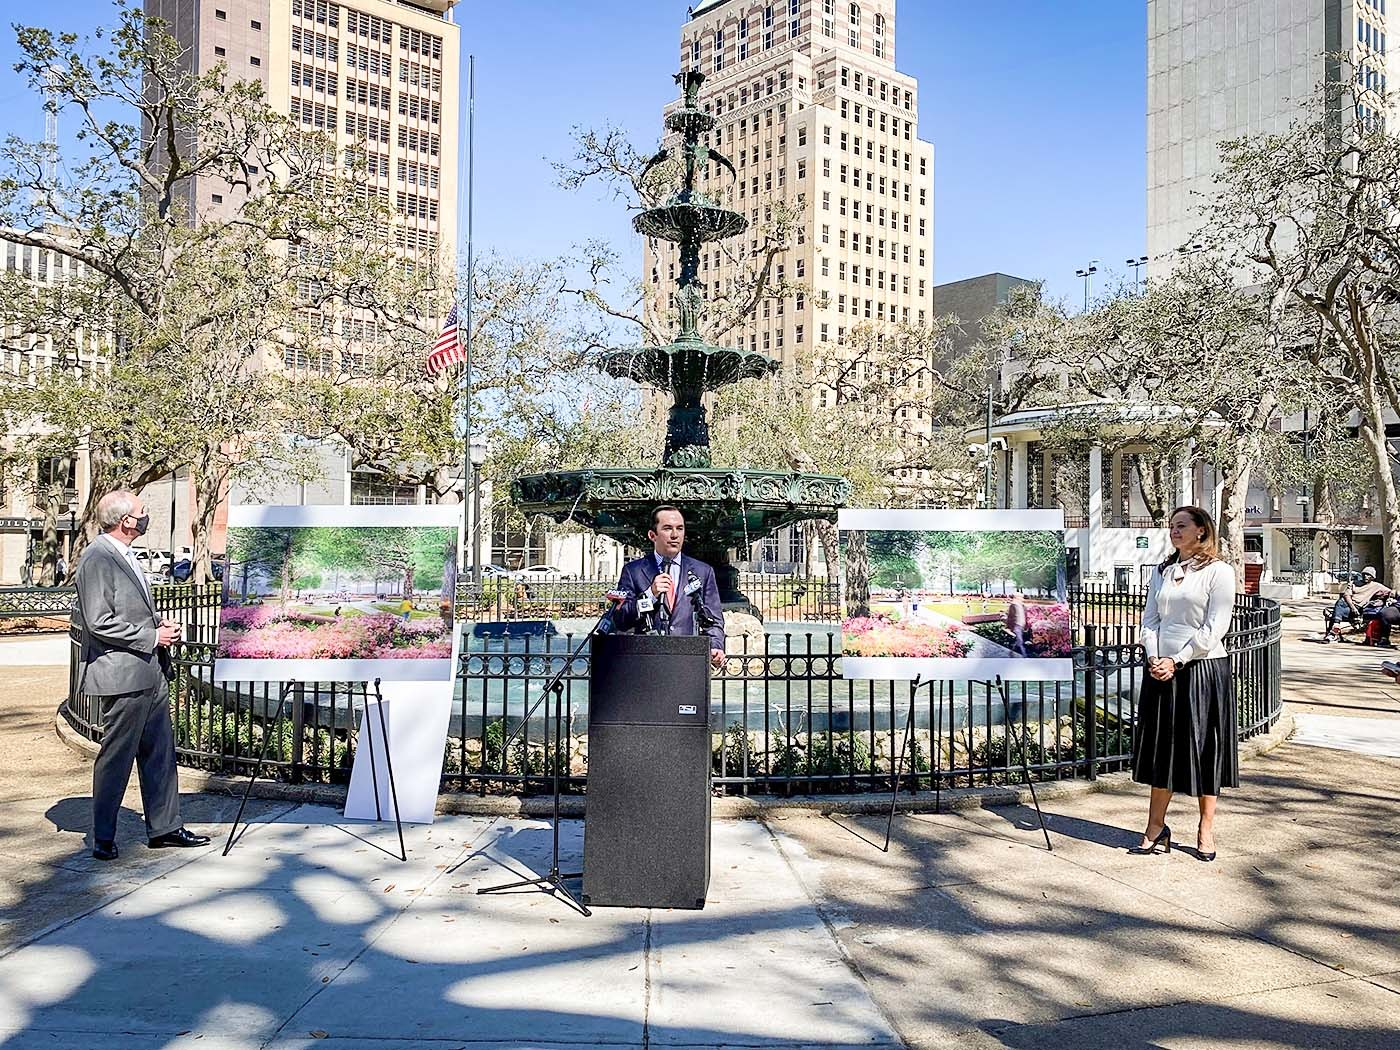 Regions' Mobile Market Executive Christian White, center, speaks during a news conference announcing a $50,000 contribution from Regions Bank. Mobile Mayor Sandy Stimpson, left, and Downtown Parks Conservancy President Kellie Hope, right, look on.